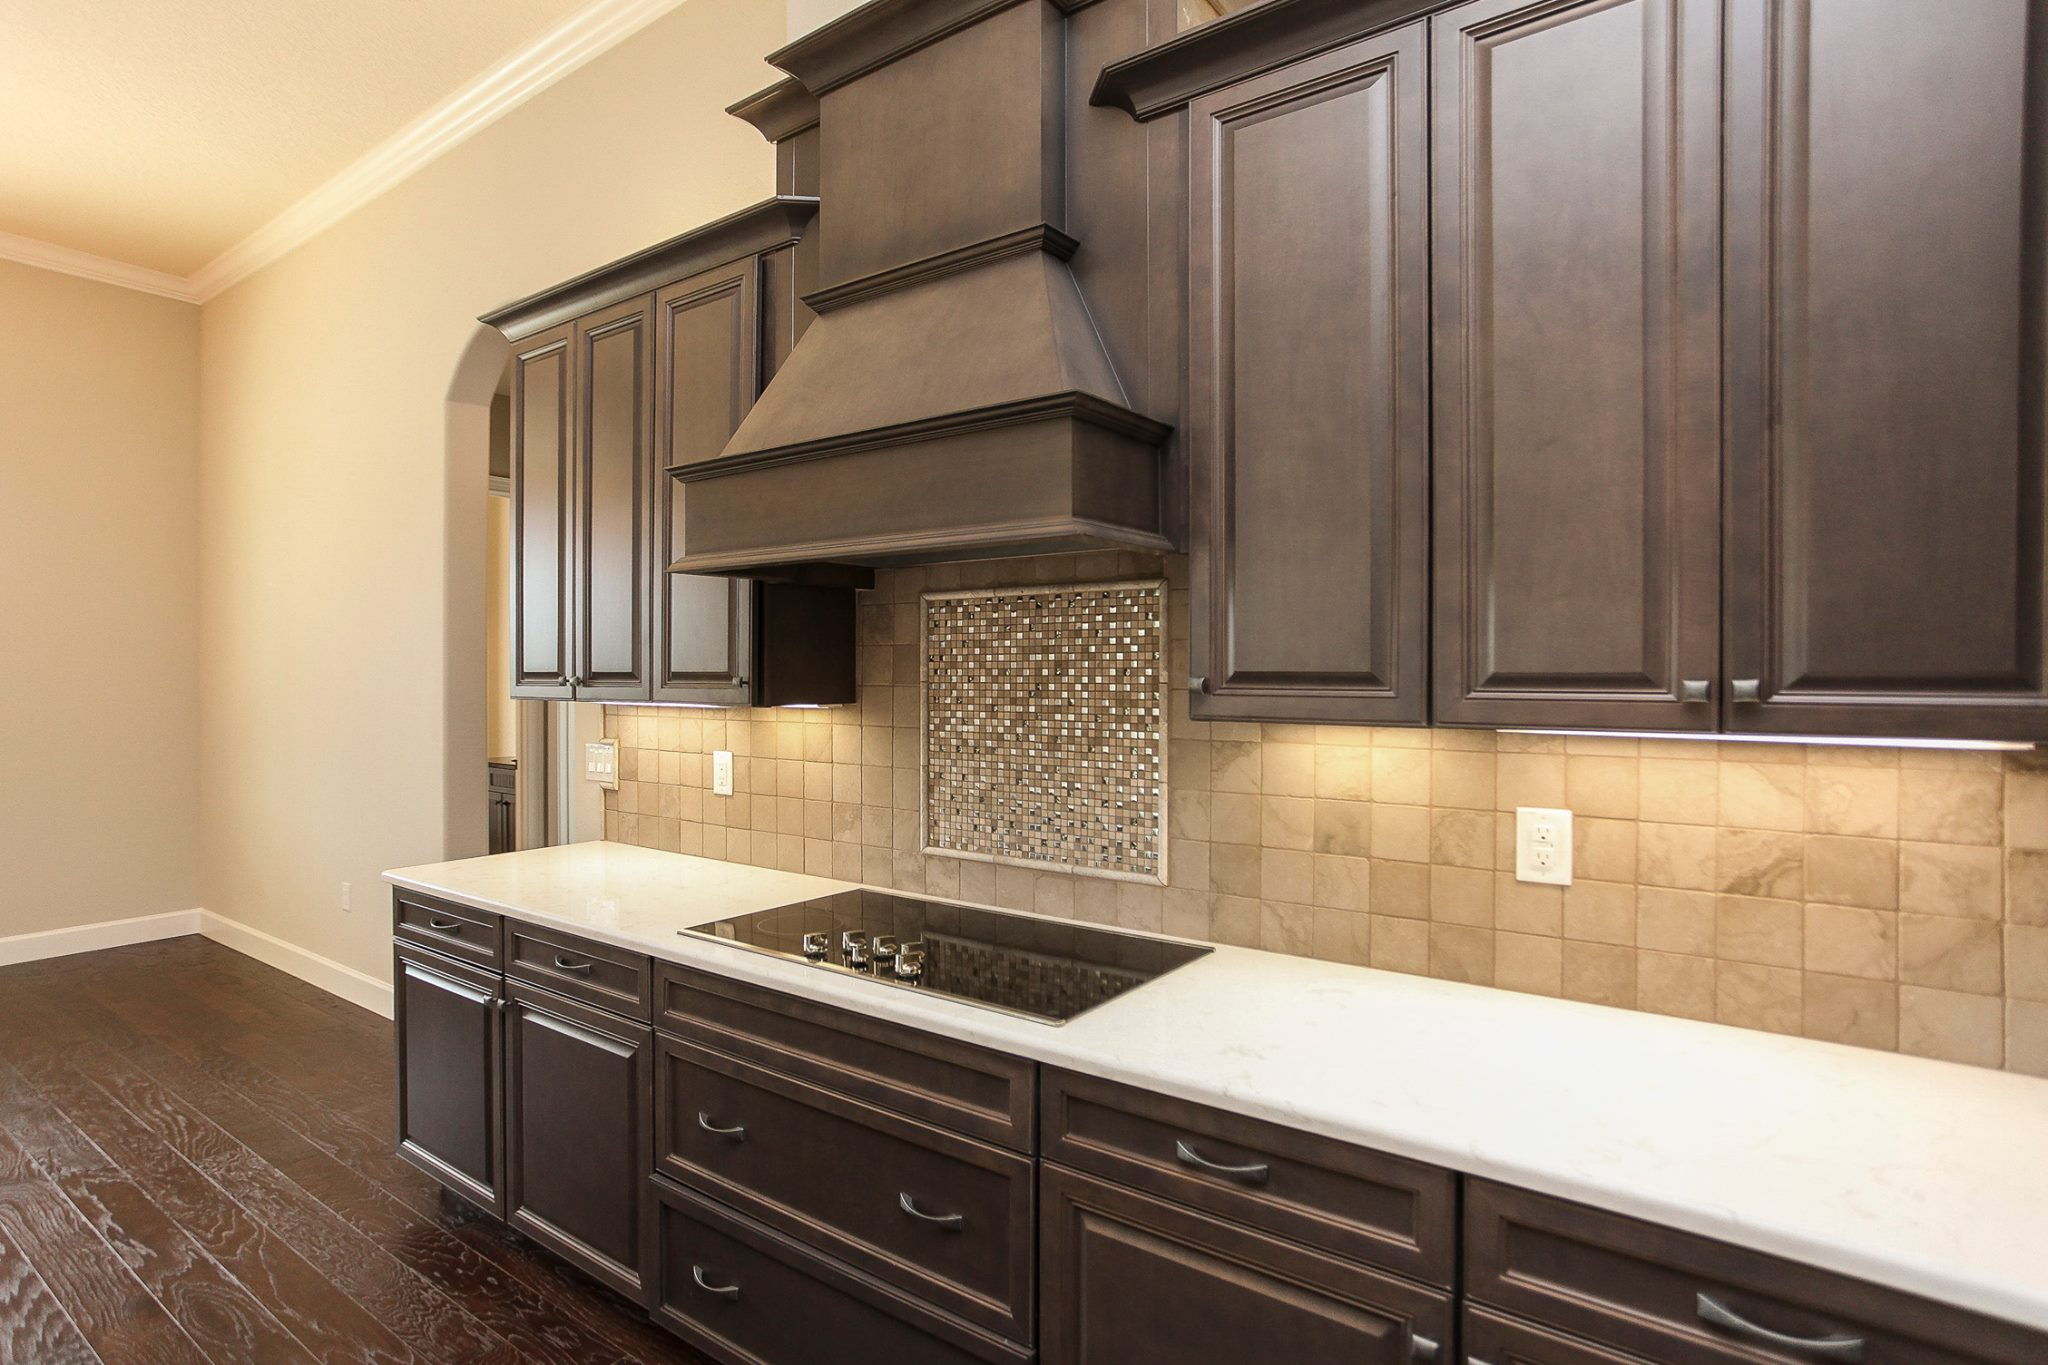 Marsh Kitchen Cabinets New Kitchen Construction With Marsh Cabinets Stanisci